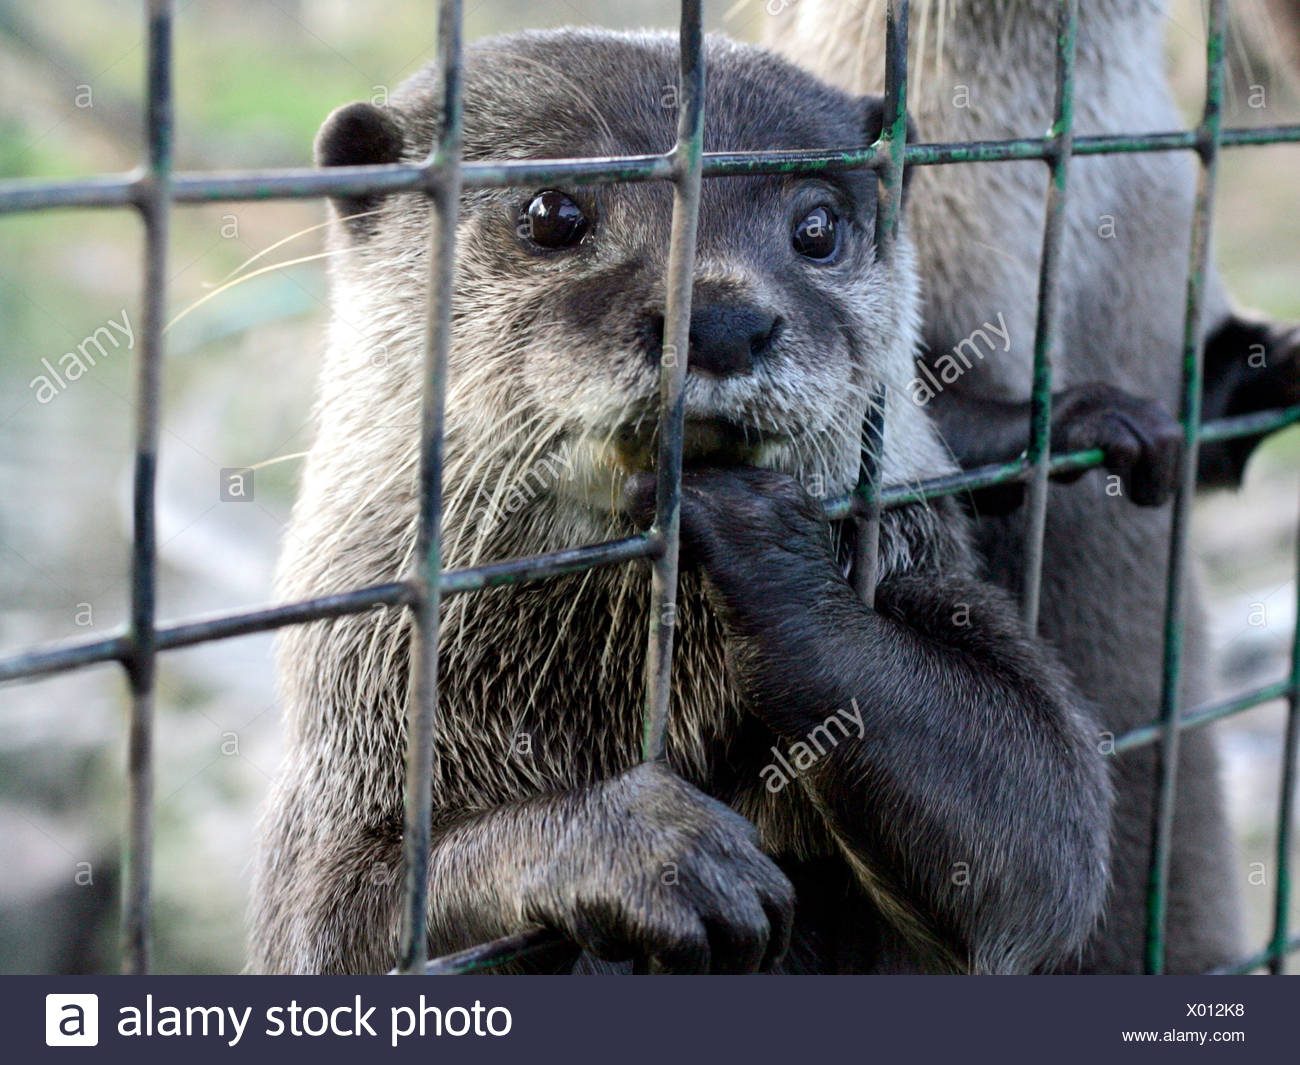 Otter in a cage waiting for food. - Stock Image